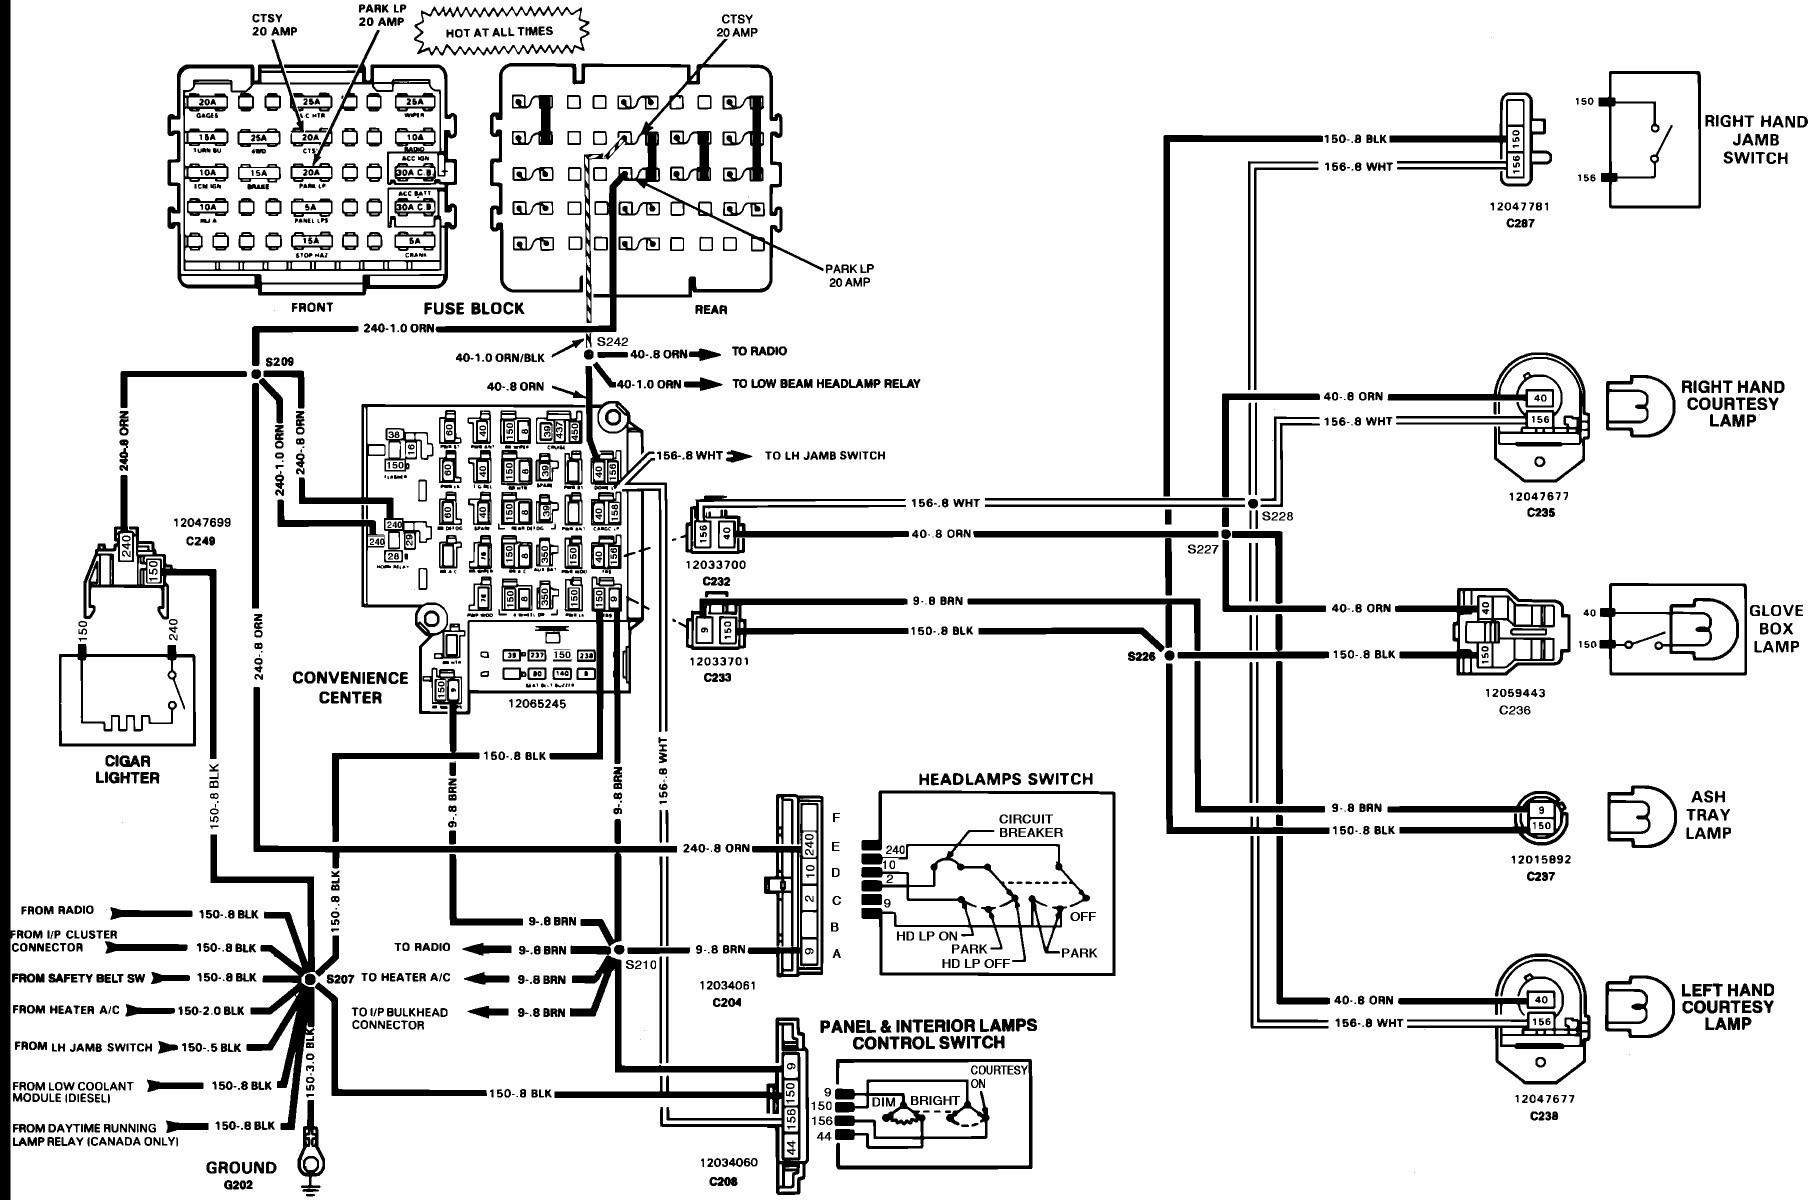 Pleasant Mopar Alternator Wiring Diagram Wiring Library Wiring 101 Mecadwellnesstrialsorg